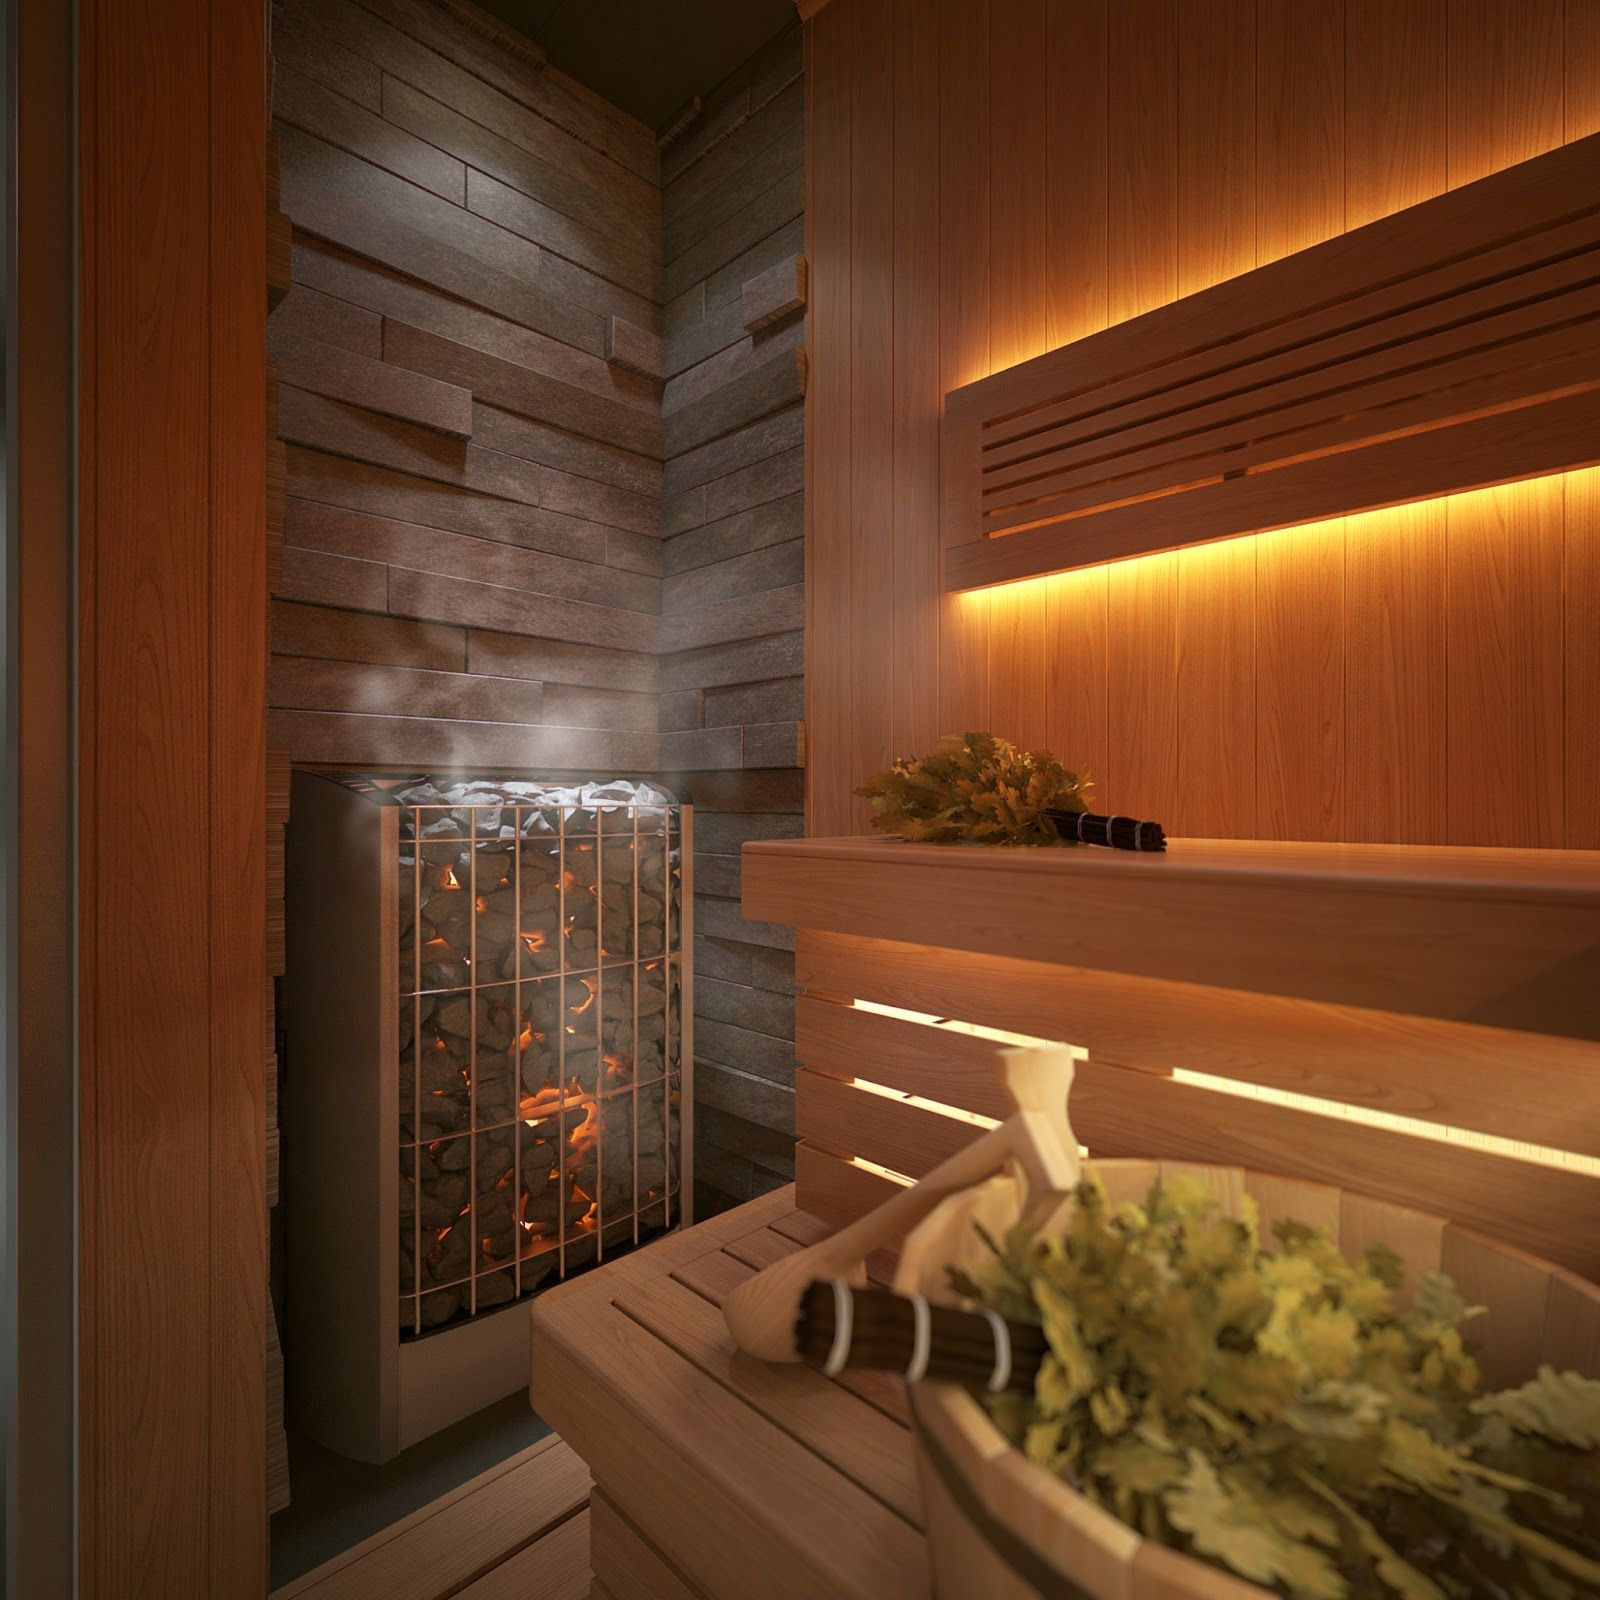 Pin By Ann Pasfield On Sauna And Steam Room Ideas